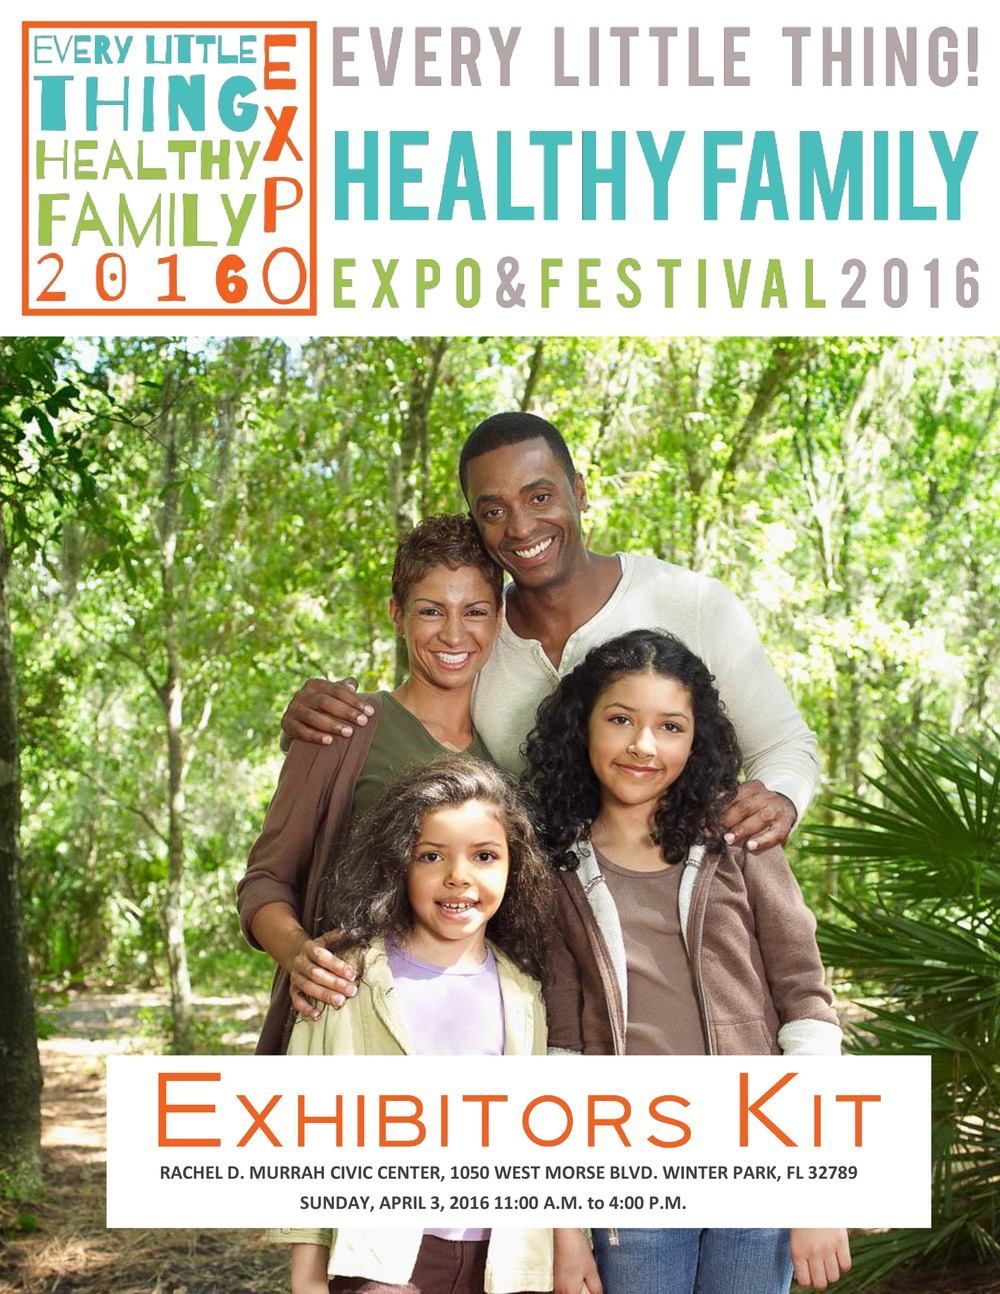 Draft COVER Exhibitors Kit Every Little Thing Healthy Family Expo 2016-.jpg